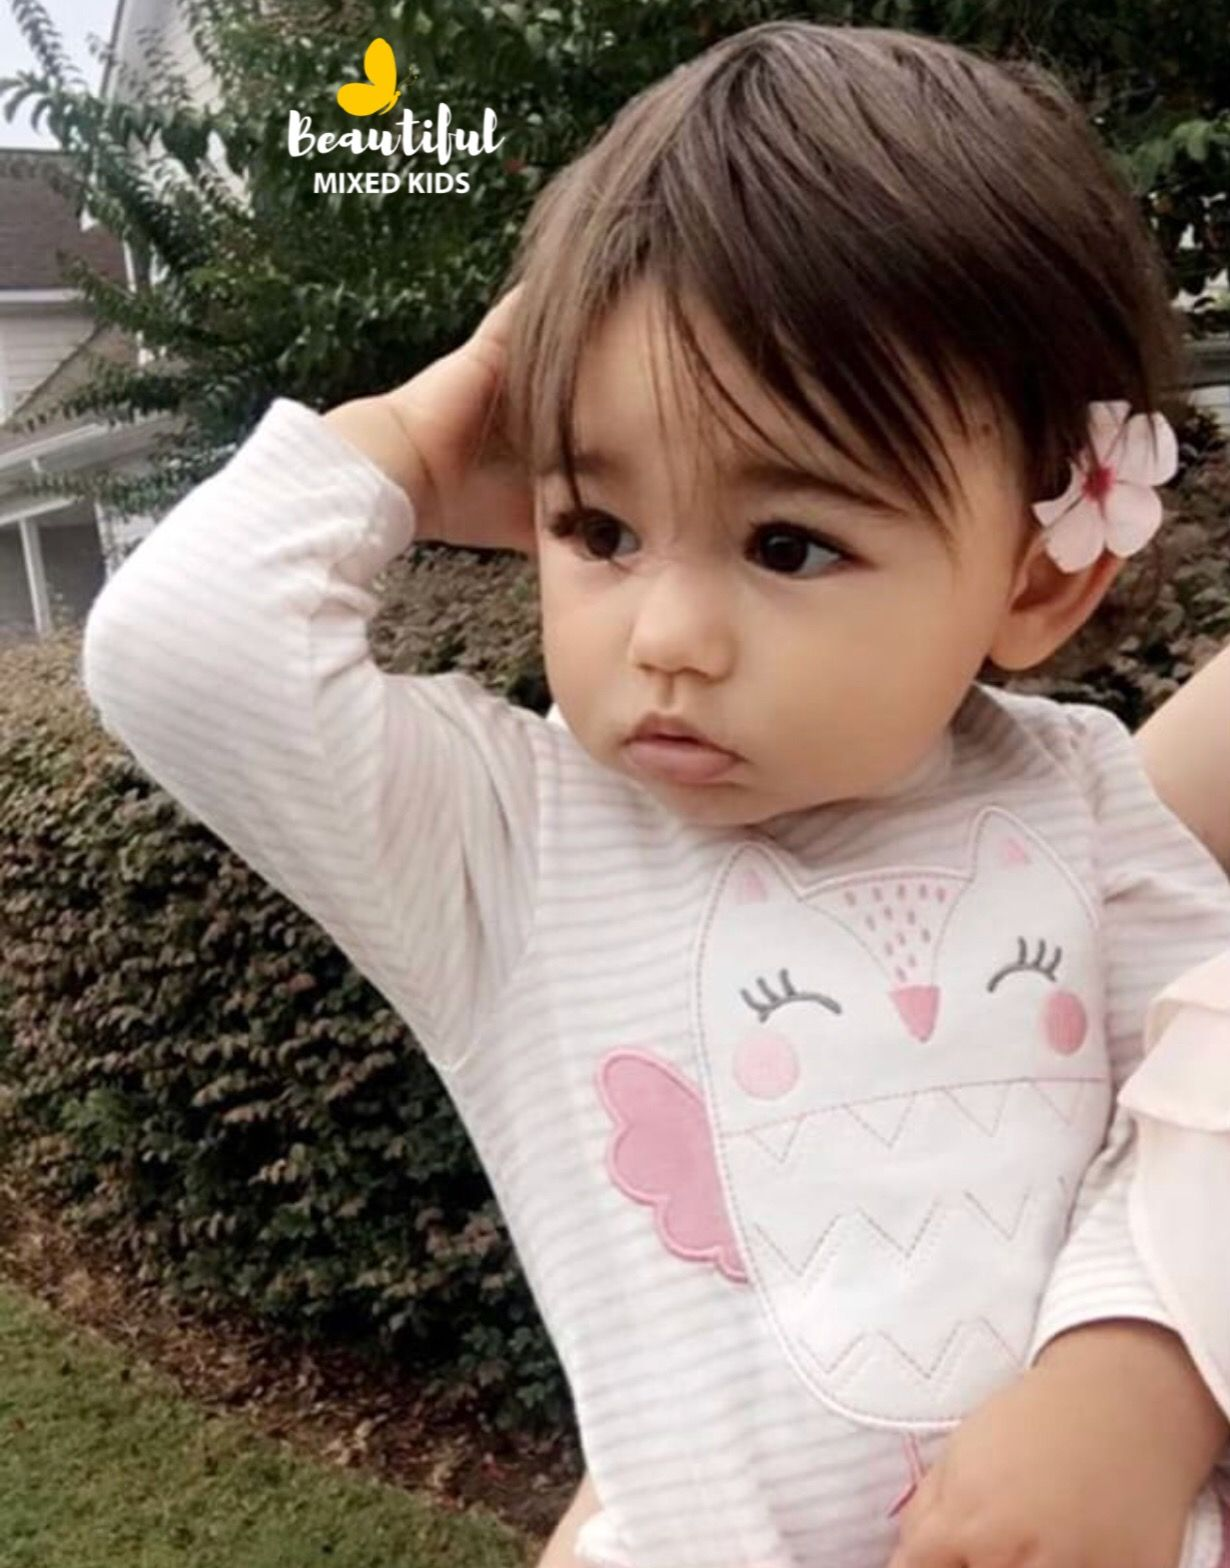 kaia willow - 1 year • native american, irish & salvadoran beautiful